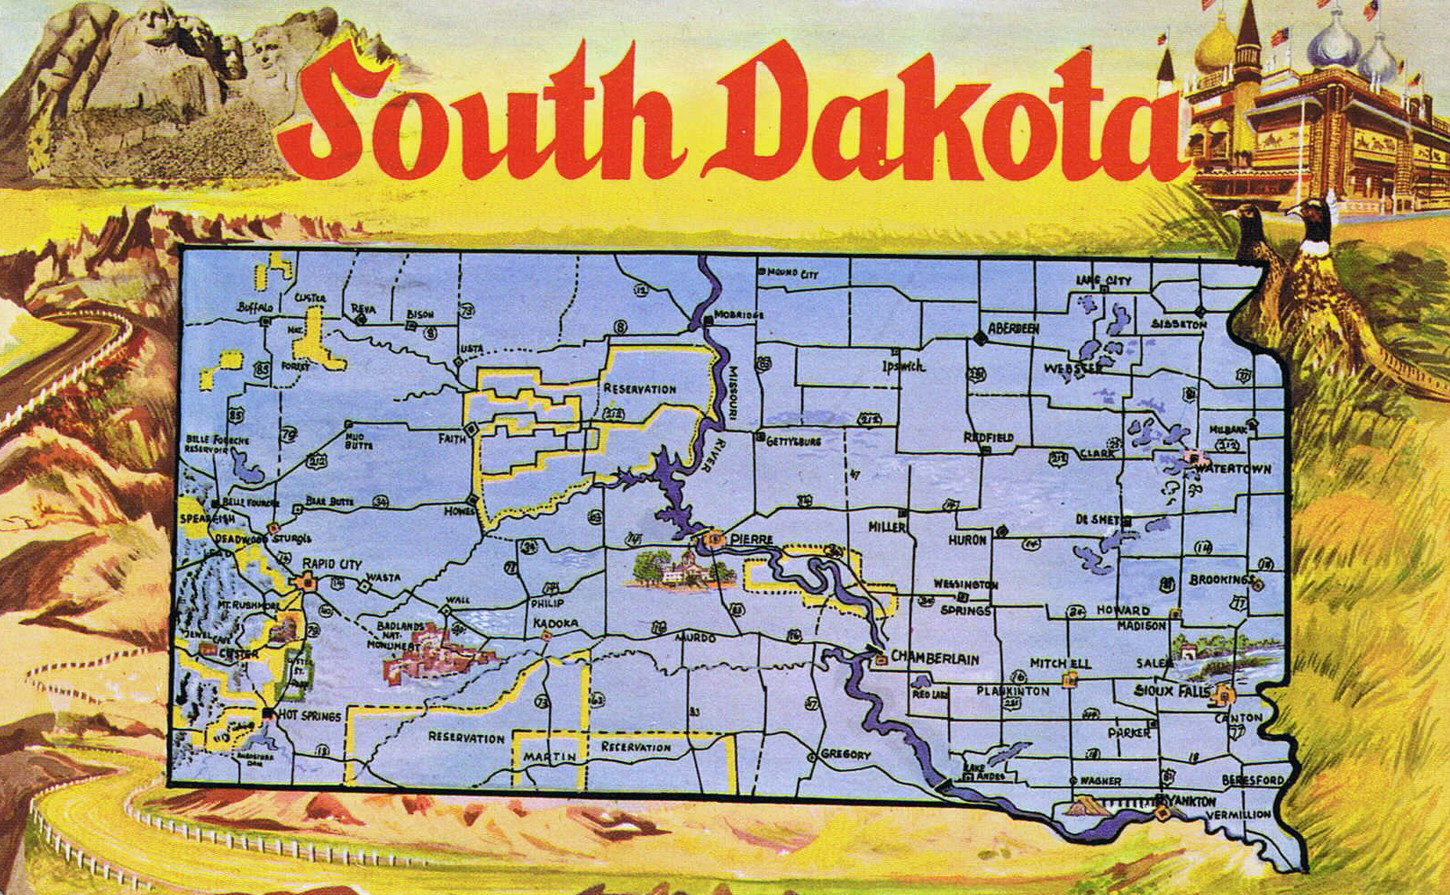 Large Tourist Illustrated Map Of South Dakota State Vidianicom - Map of south dakota